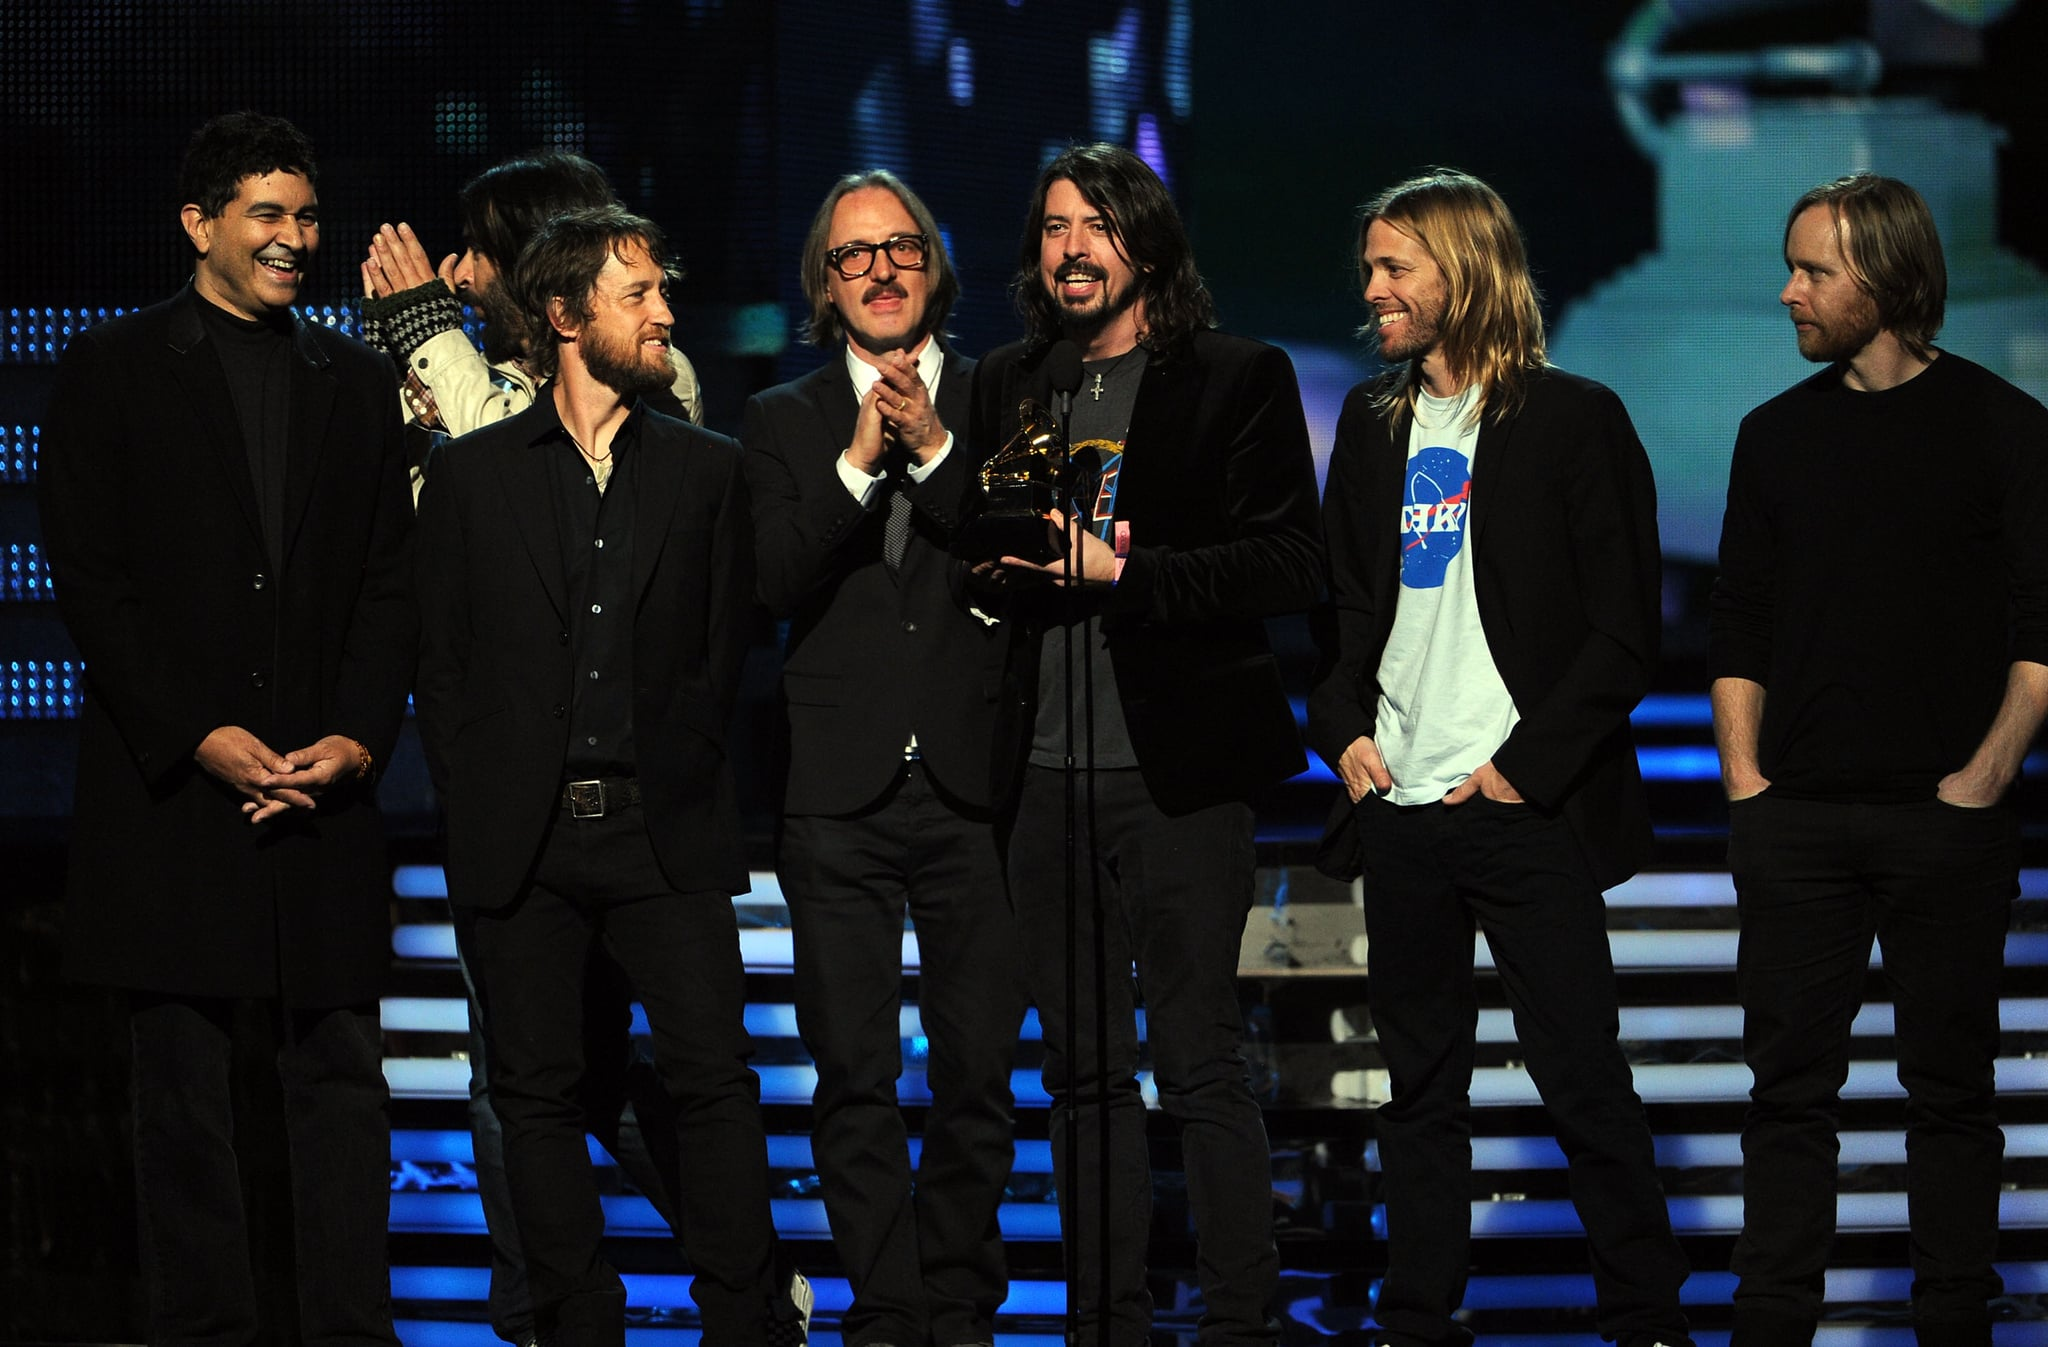 The Foo Fighters happily accepted their latest Grammy Award.